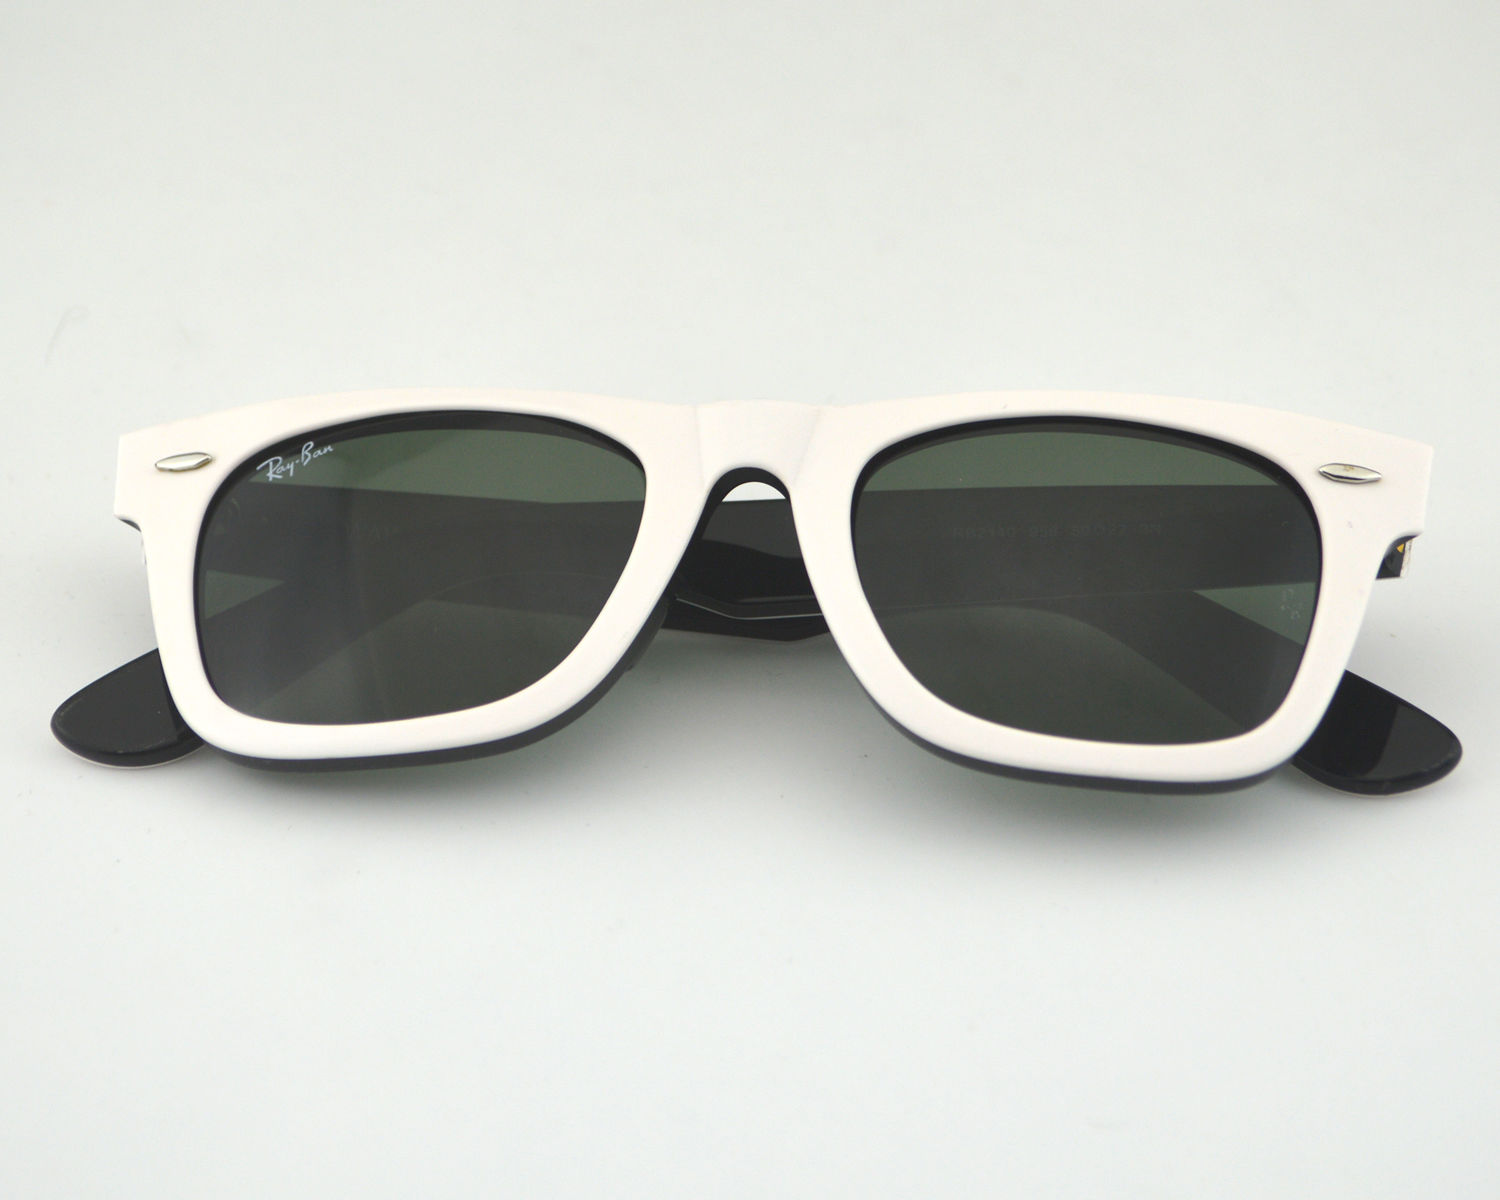 5b1a83ebd5b Ray Ban RB 2140 Original Wayfarer Rare Prints 956 White Black Glass Green  Classic G-15 Lens Unisex Sunglasses 50mm